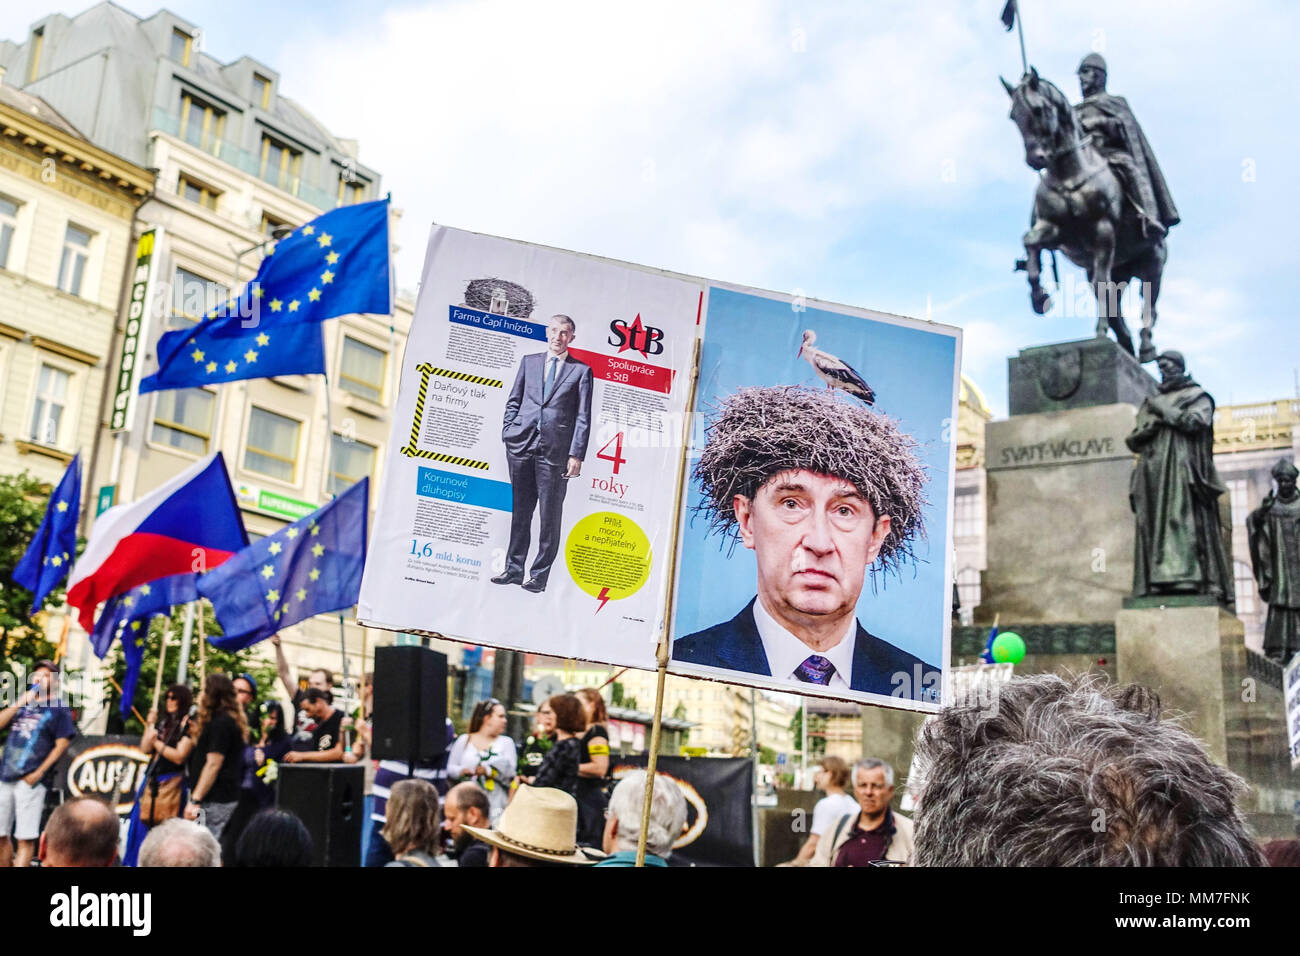 Prague, Czech Republic. 9th May, 2018. Demonstration against Premier Babis, President Zeman and the Communists - Stock Image